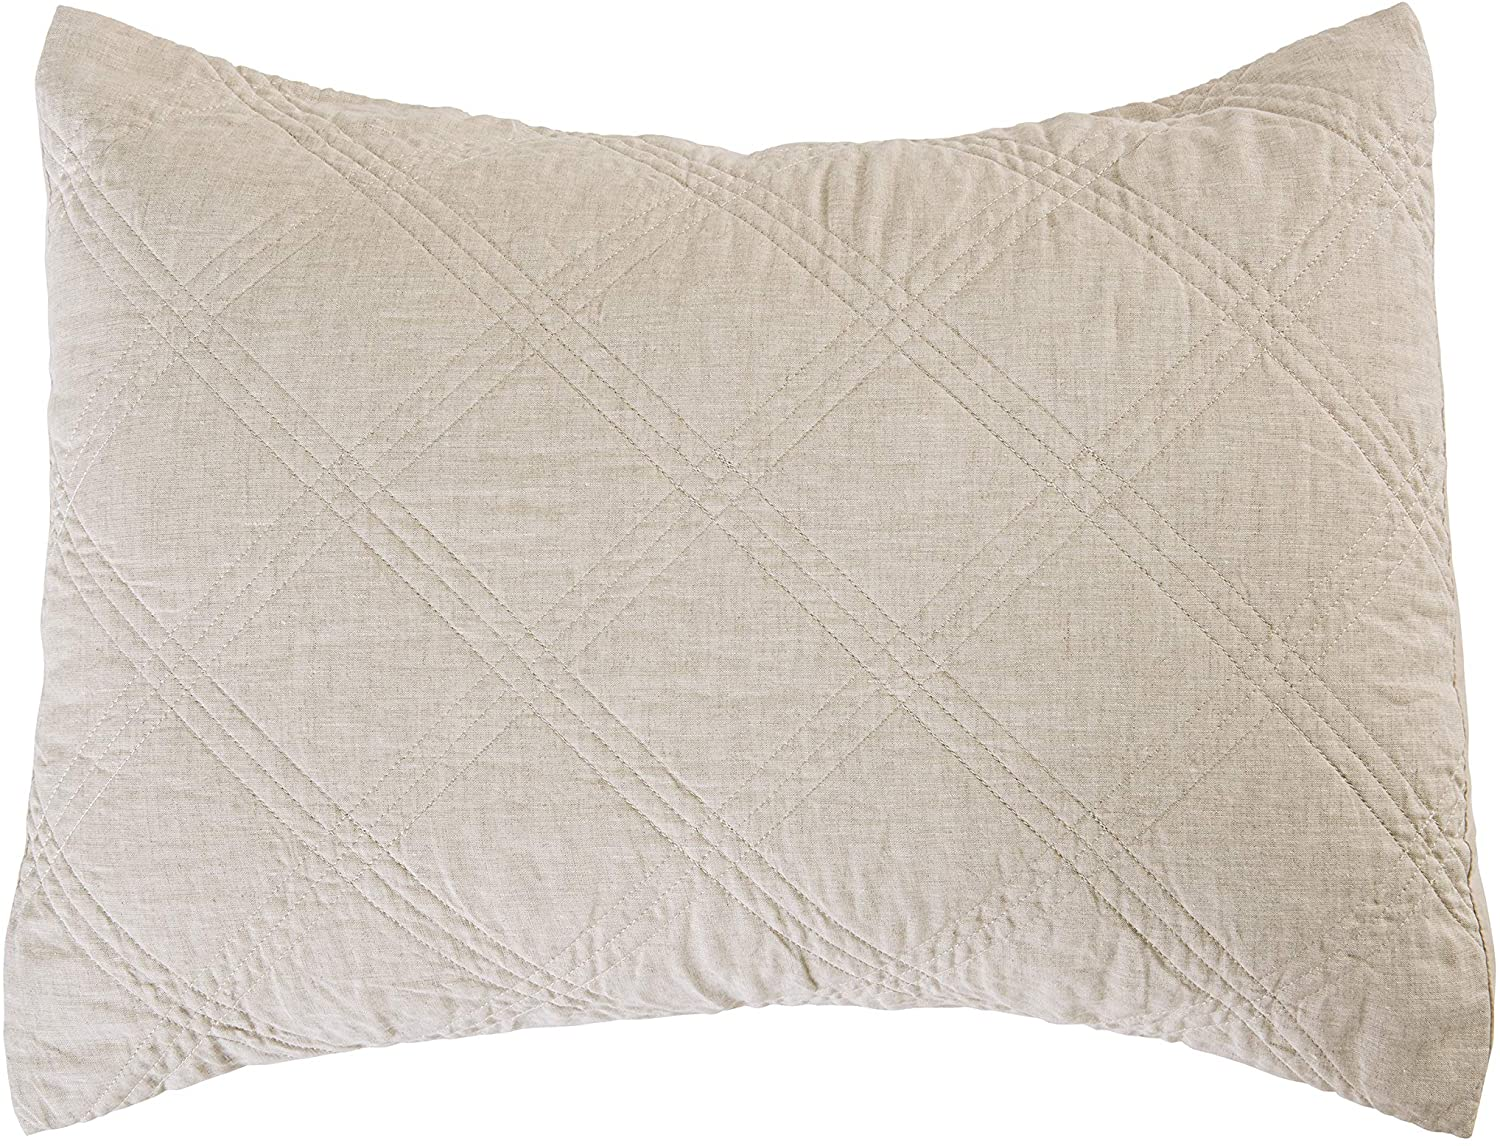 Levtex home - 100% Linen Front/100% Cotton Back - Standard Quilted Sham - Washed Linen - Natural - Sham Size (26 x 20in.)